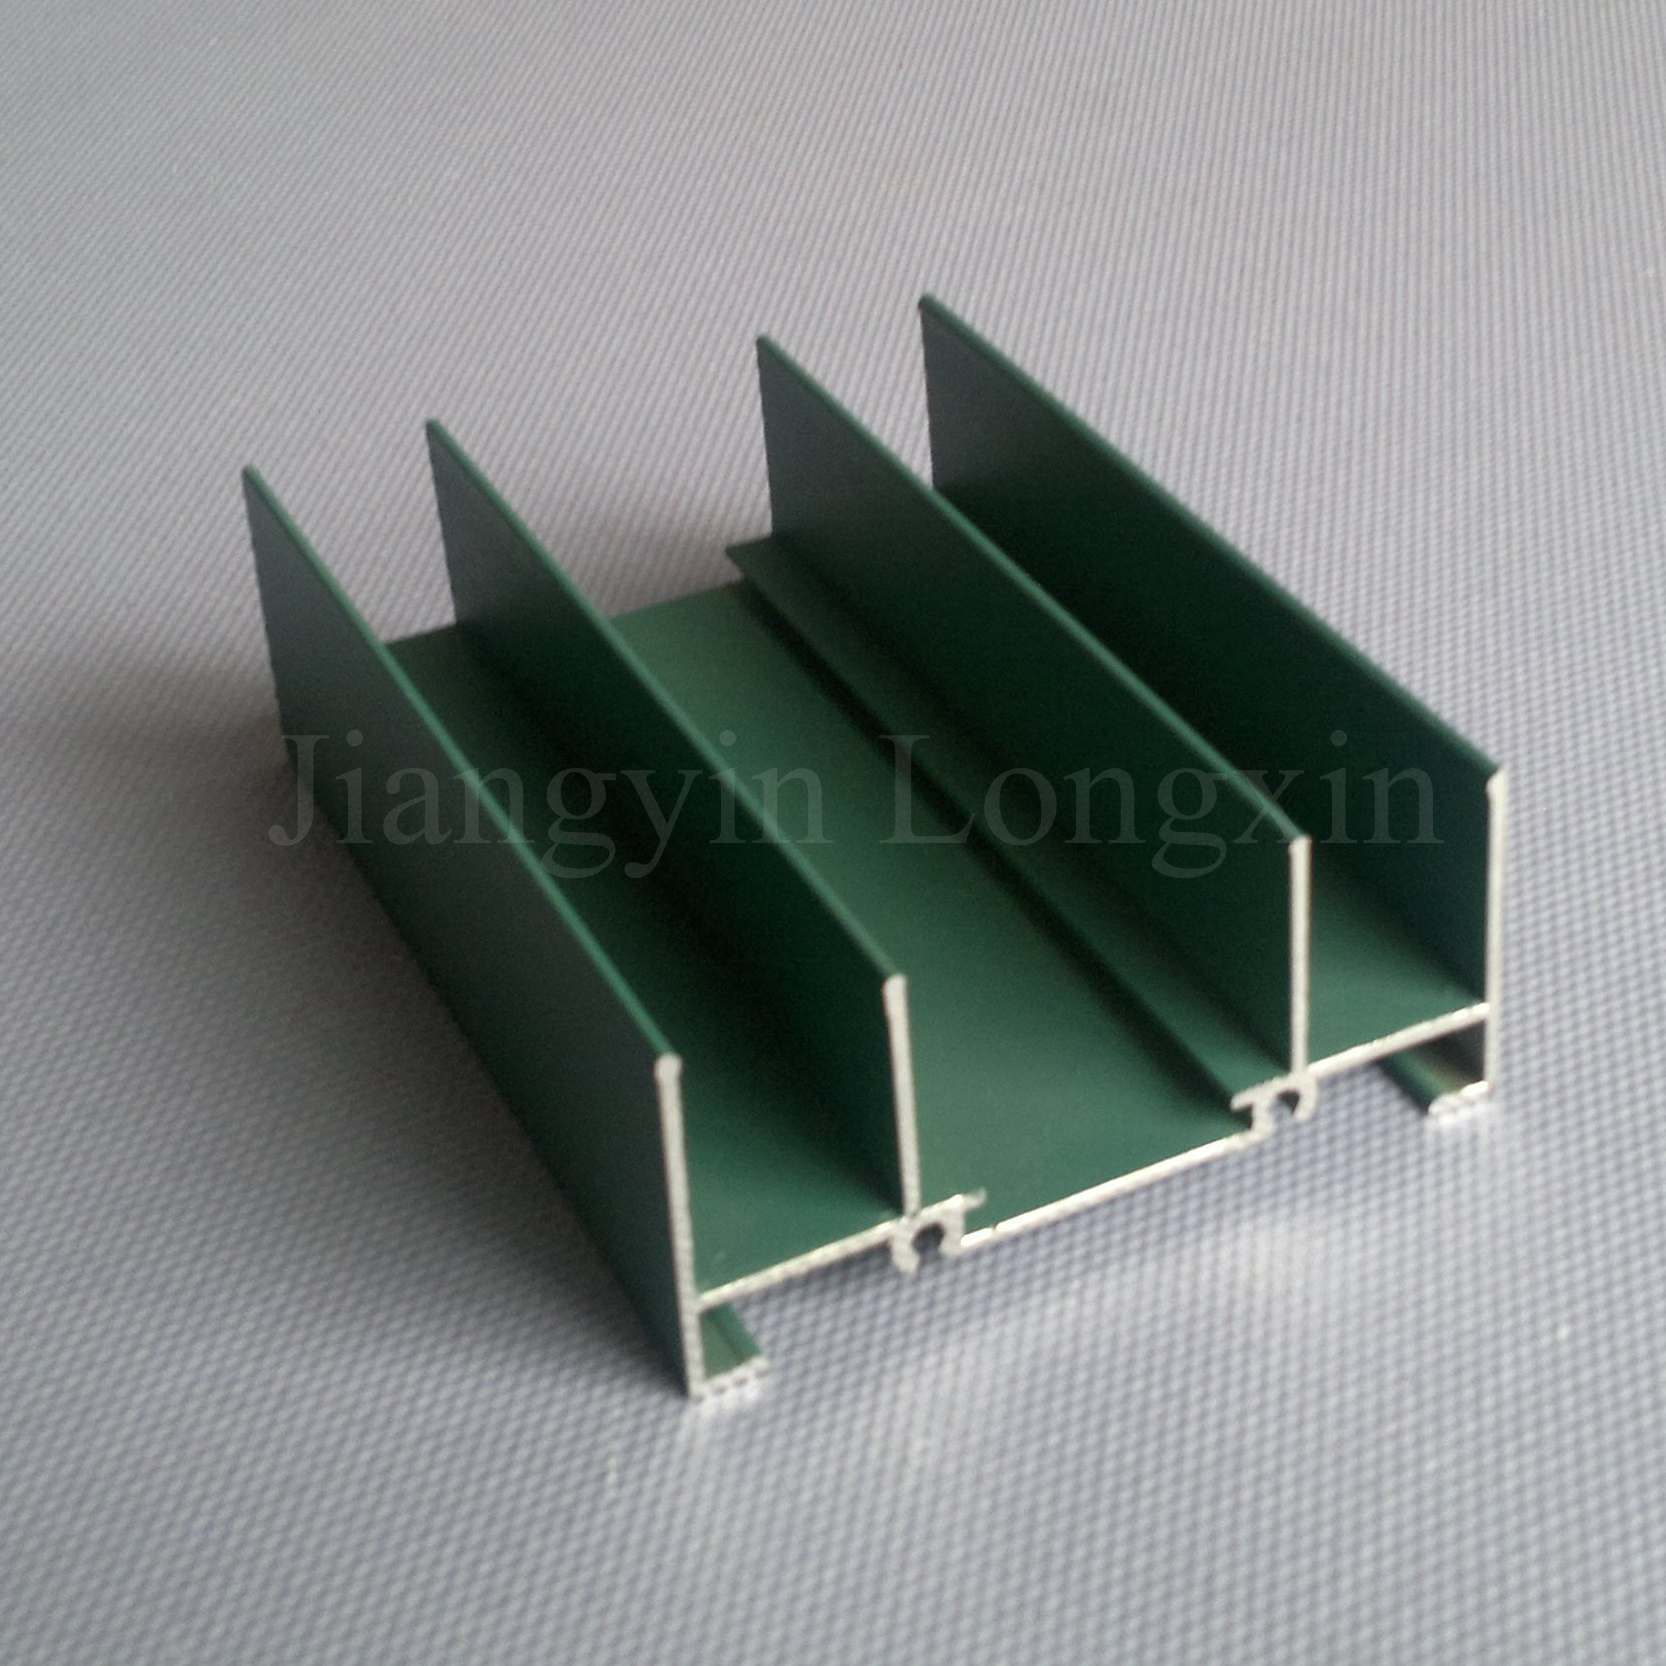 Aluminium Profiles with Green Powder Coating for Windows